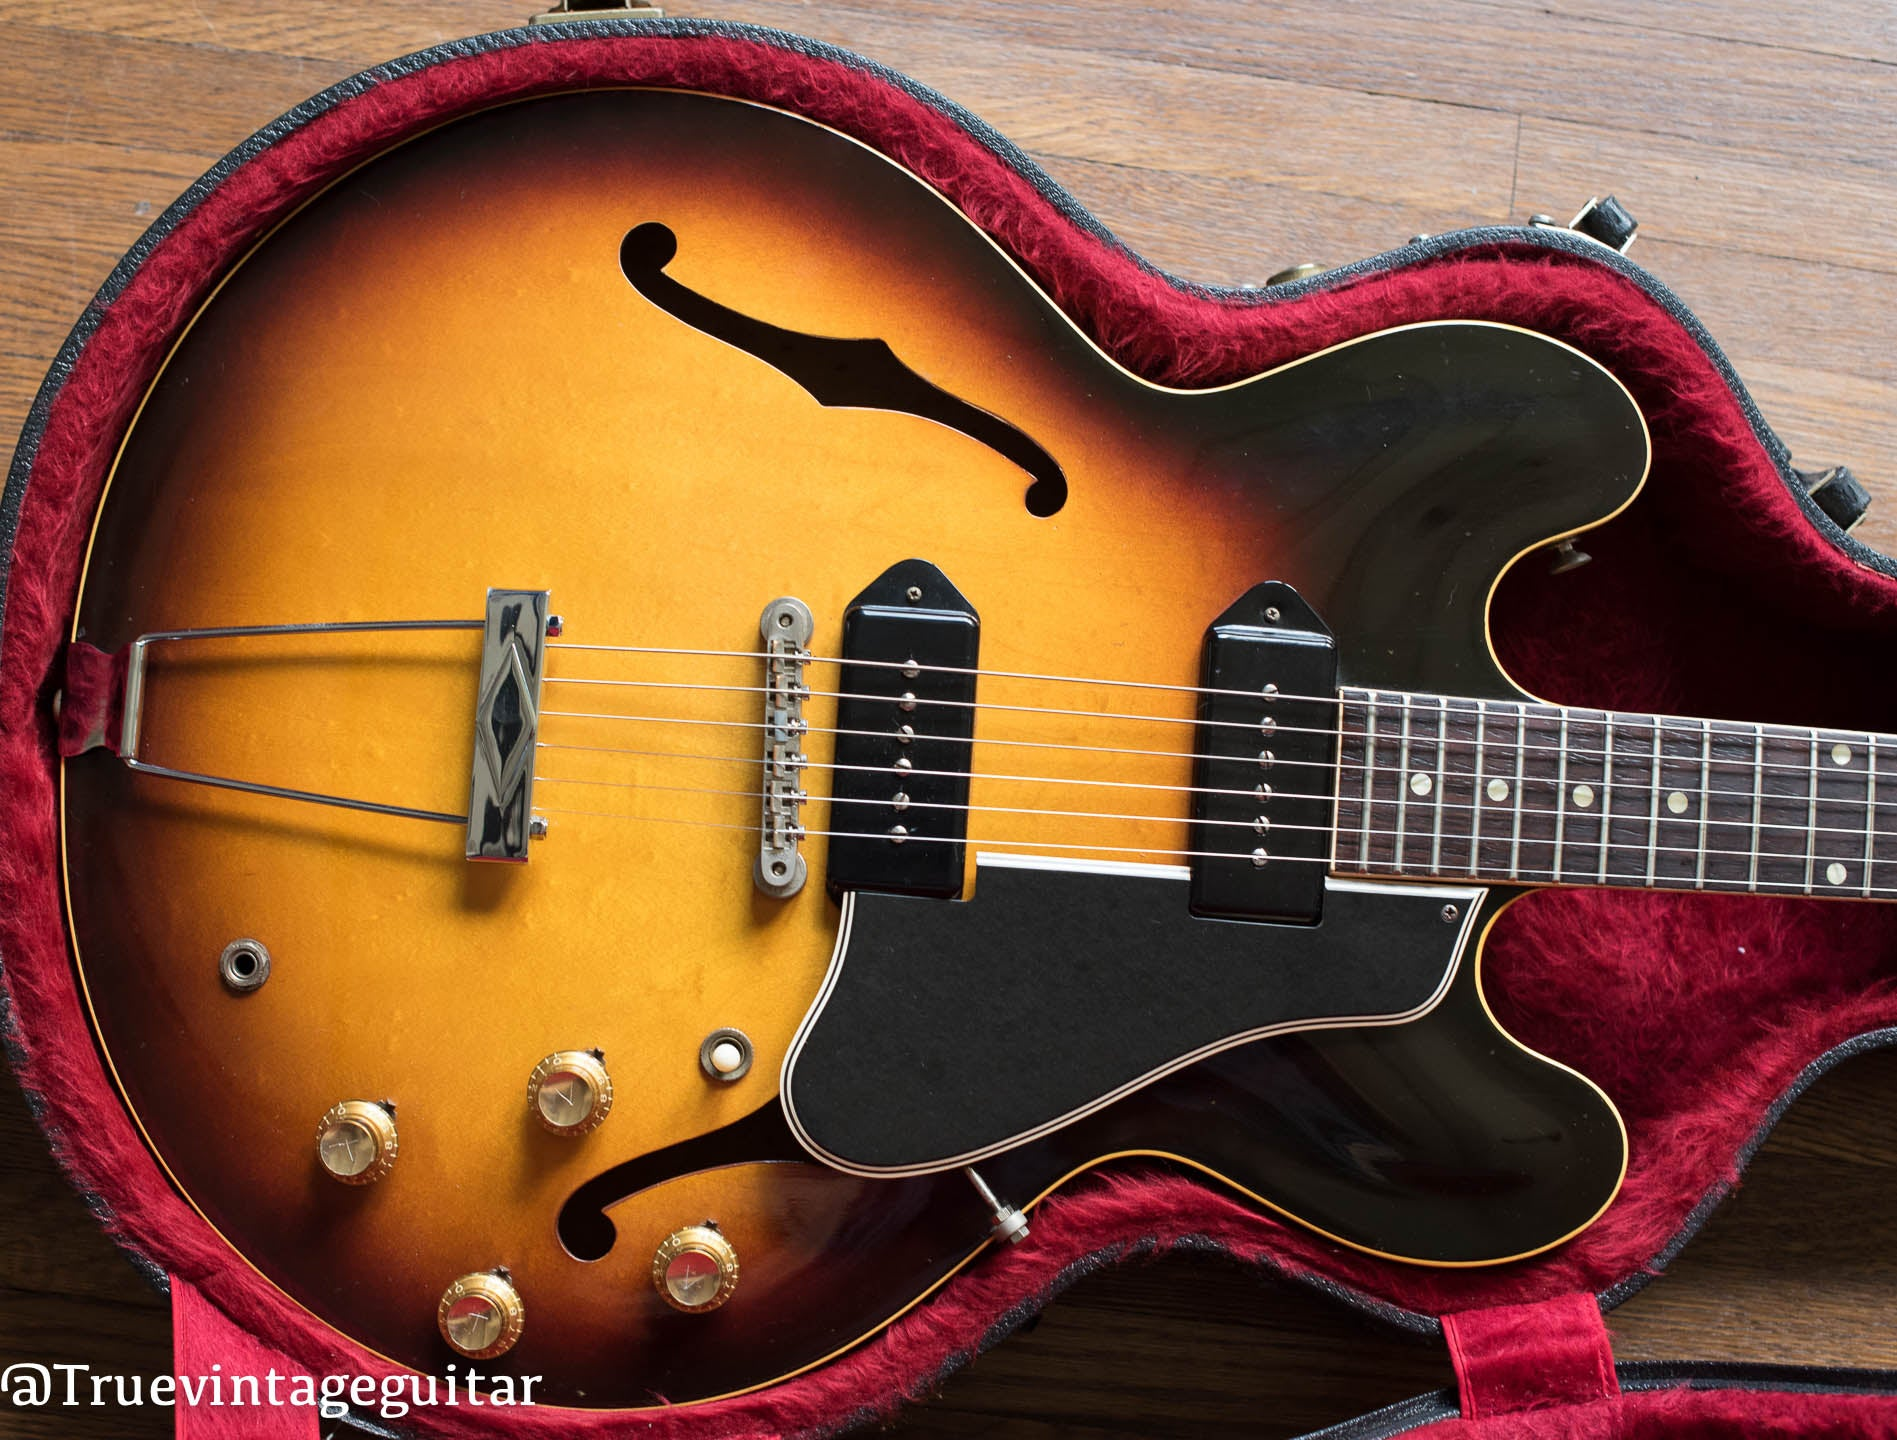 Vintage Gibson electric guitar 1960